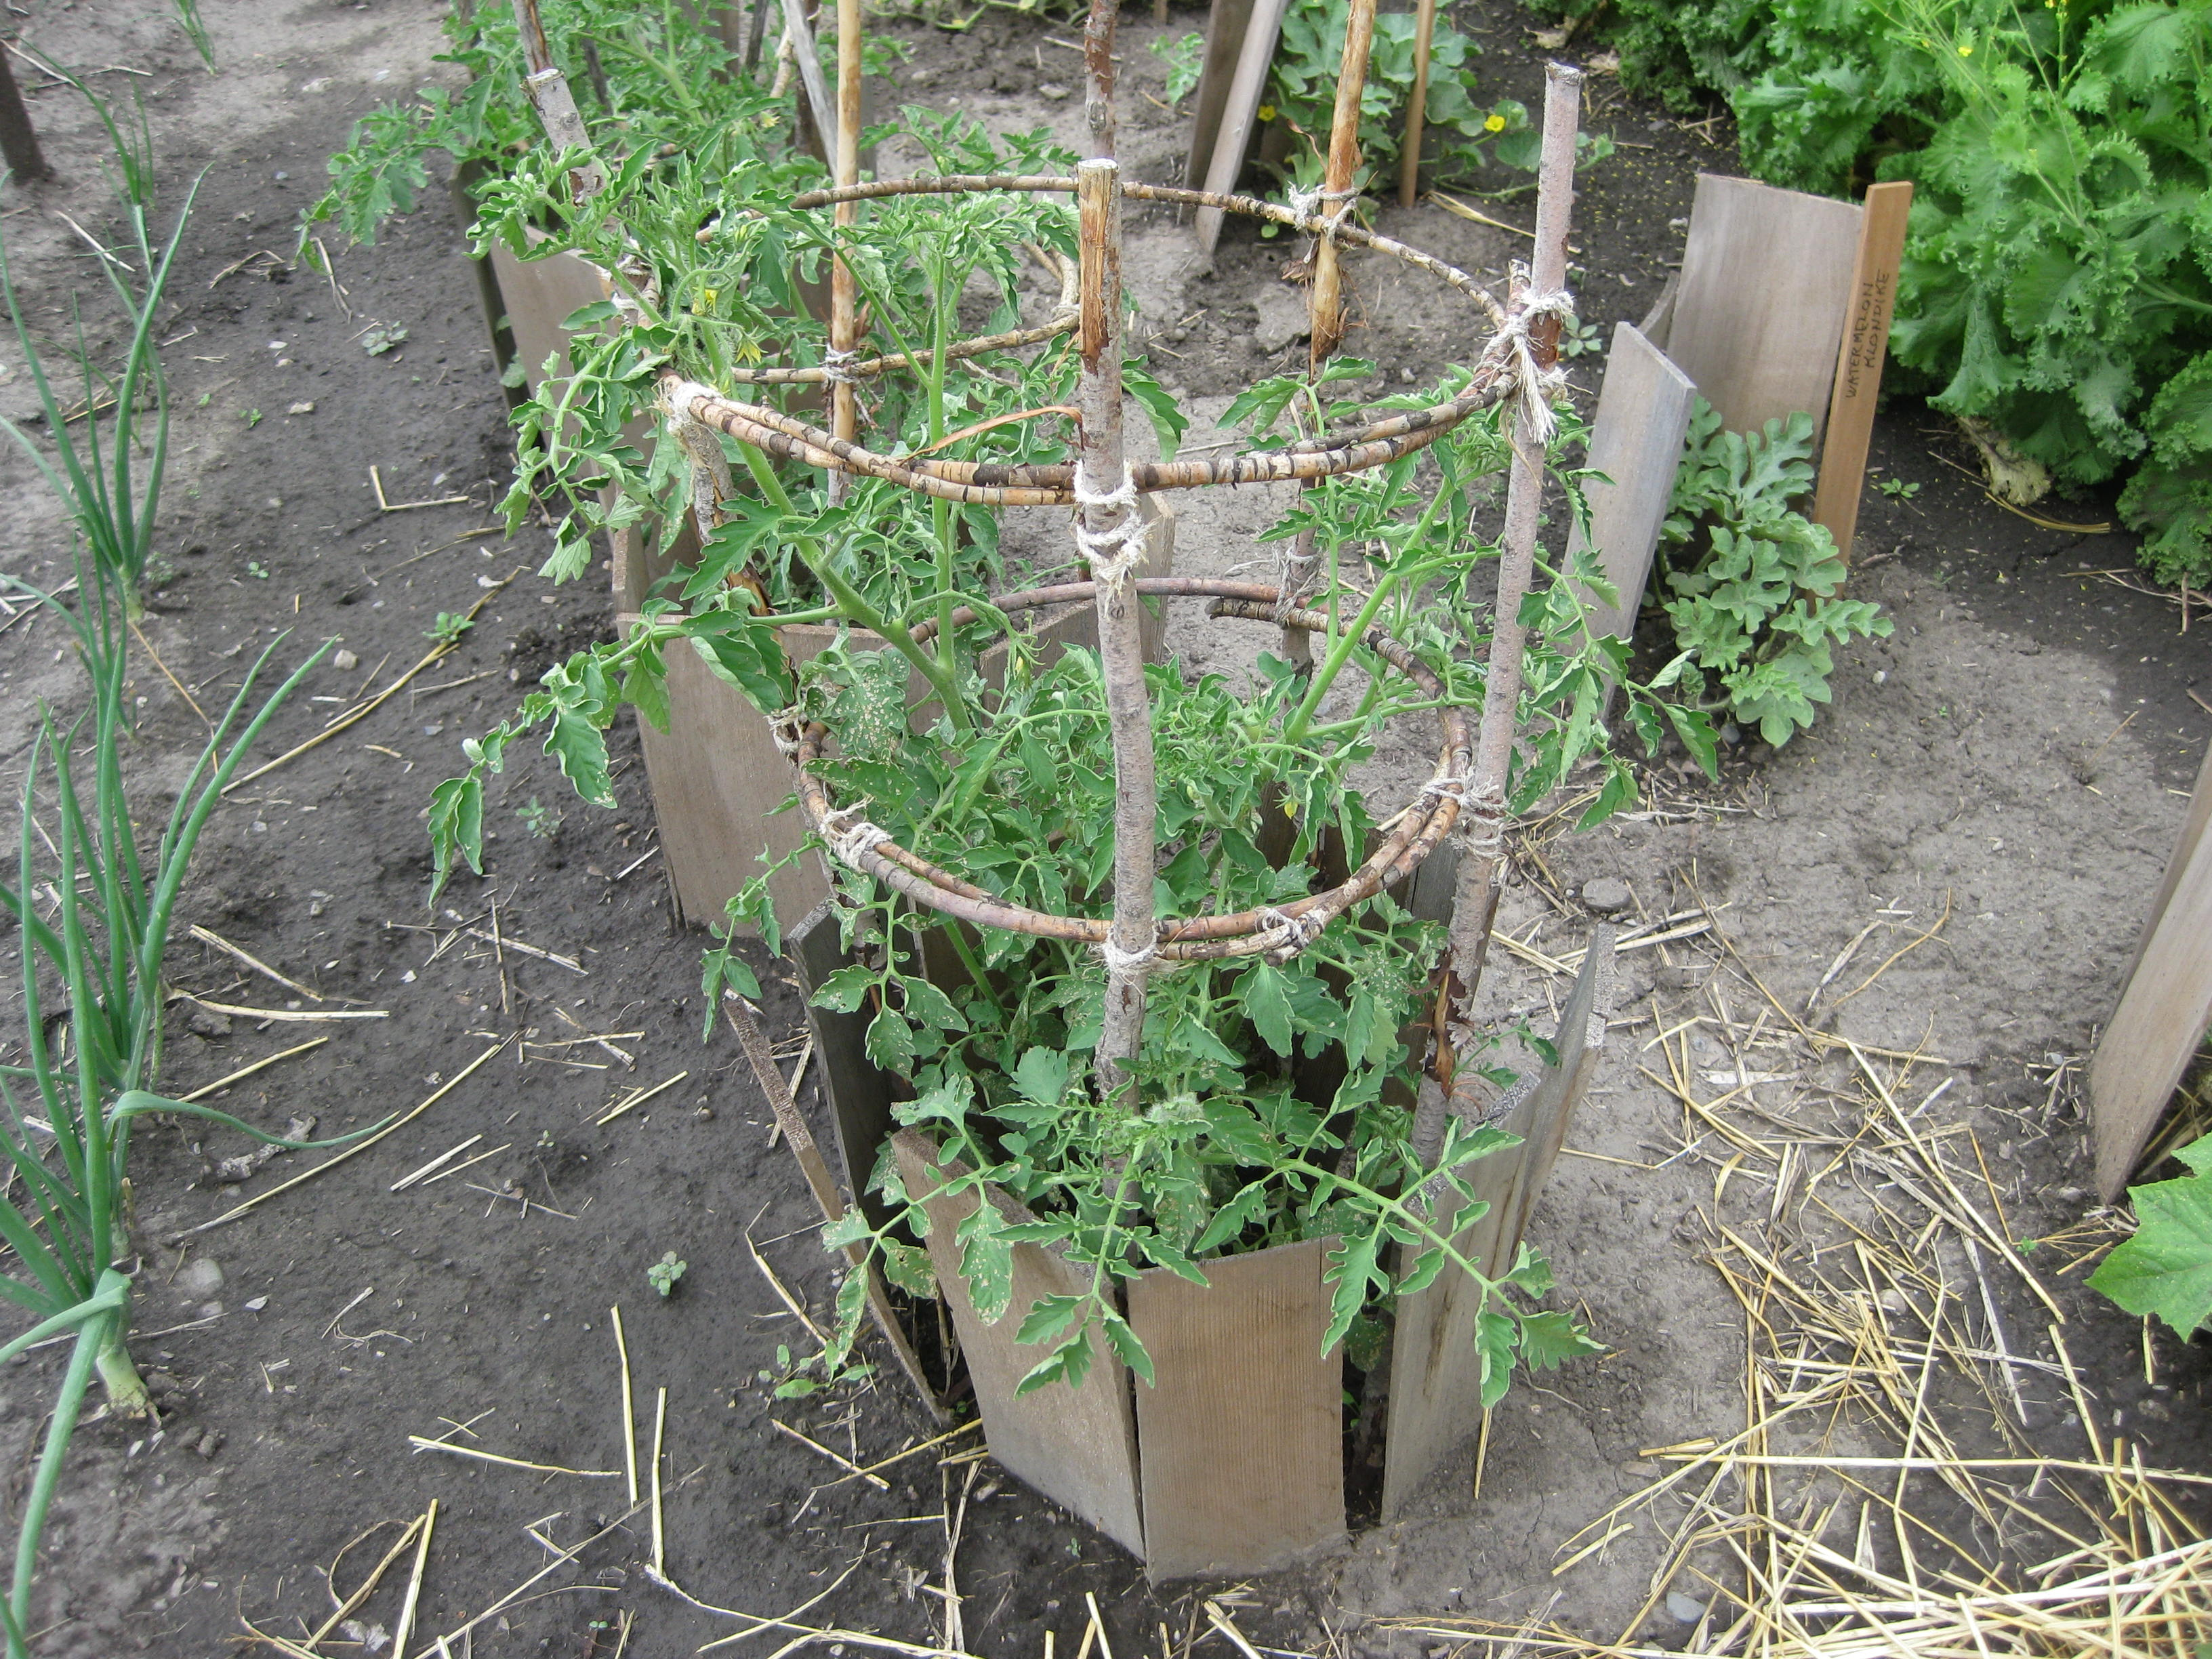 Handmade Tomato Cages From Michigan To Montana